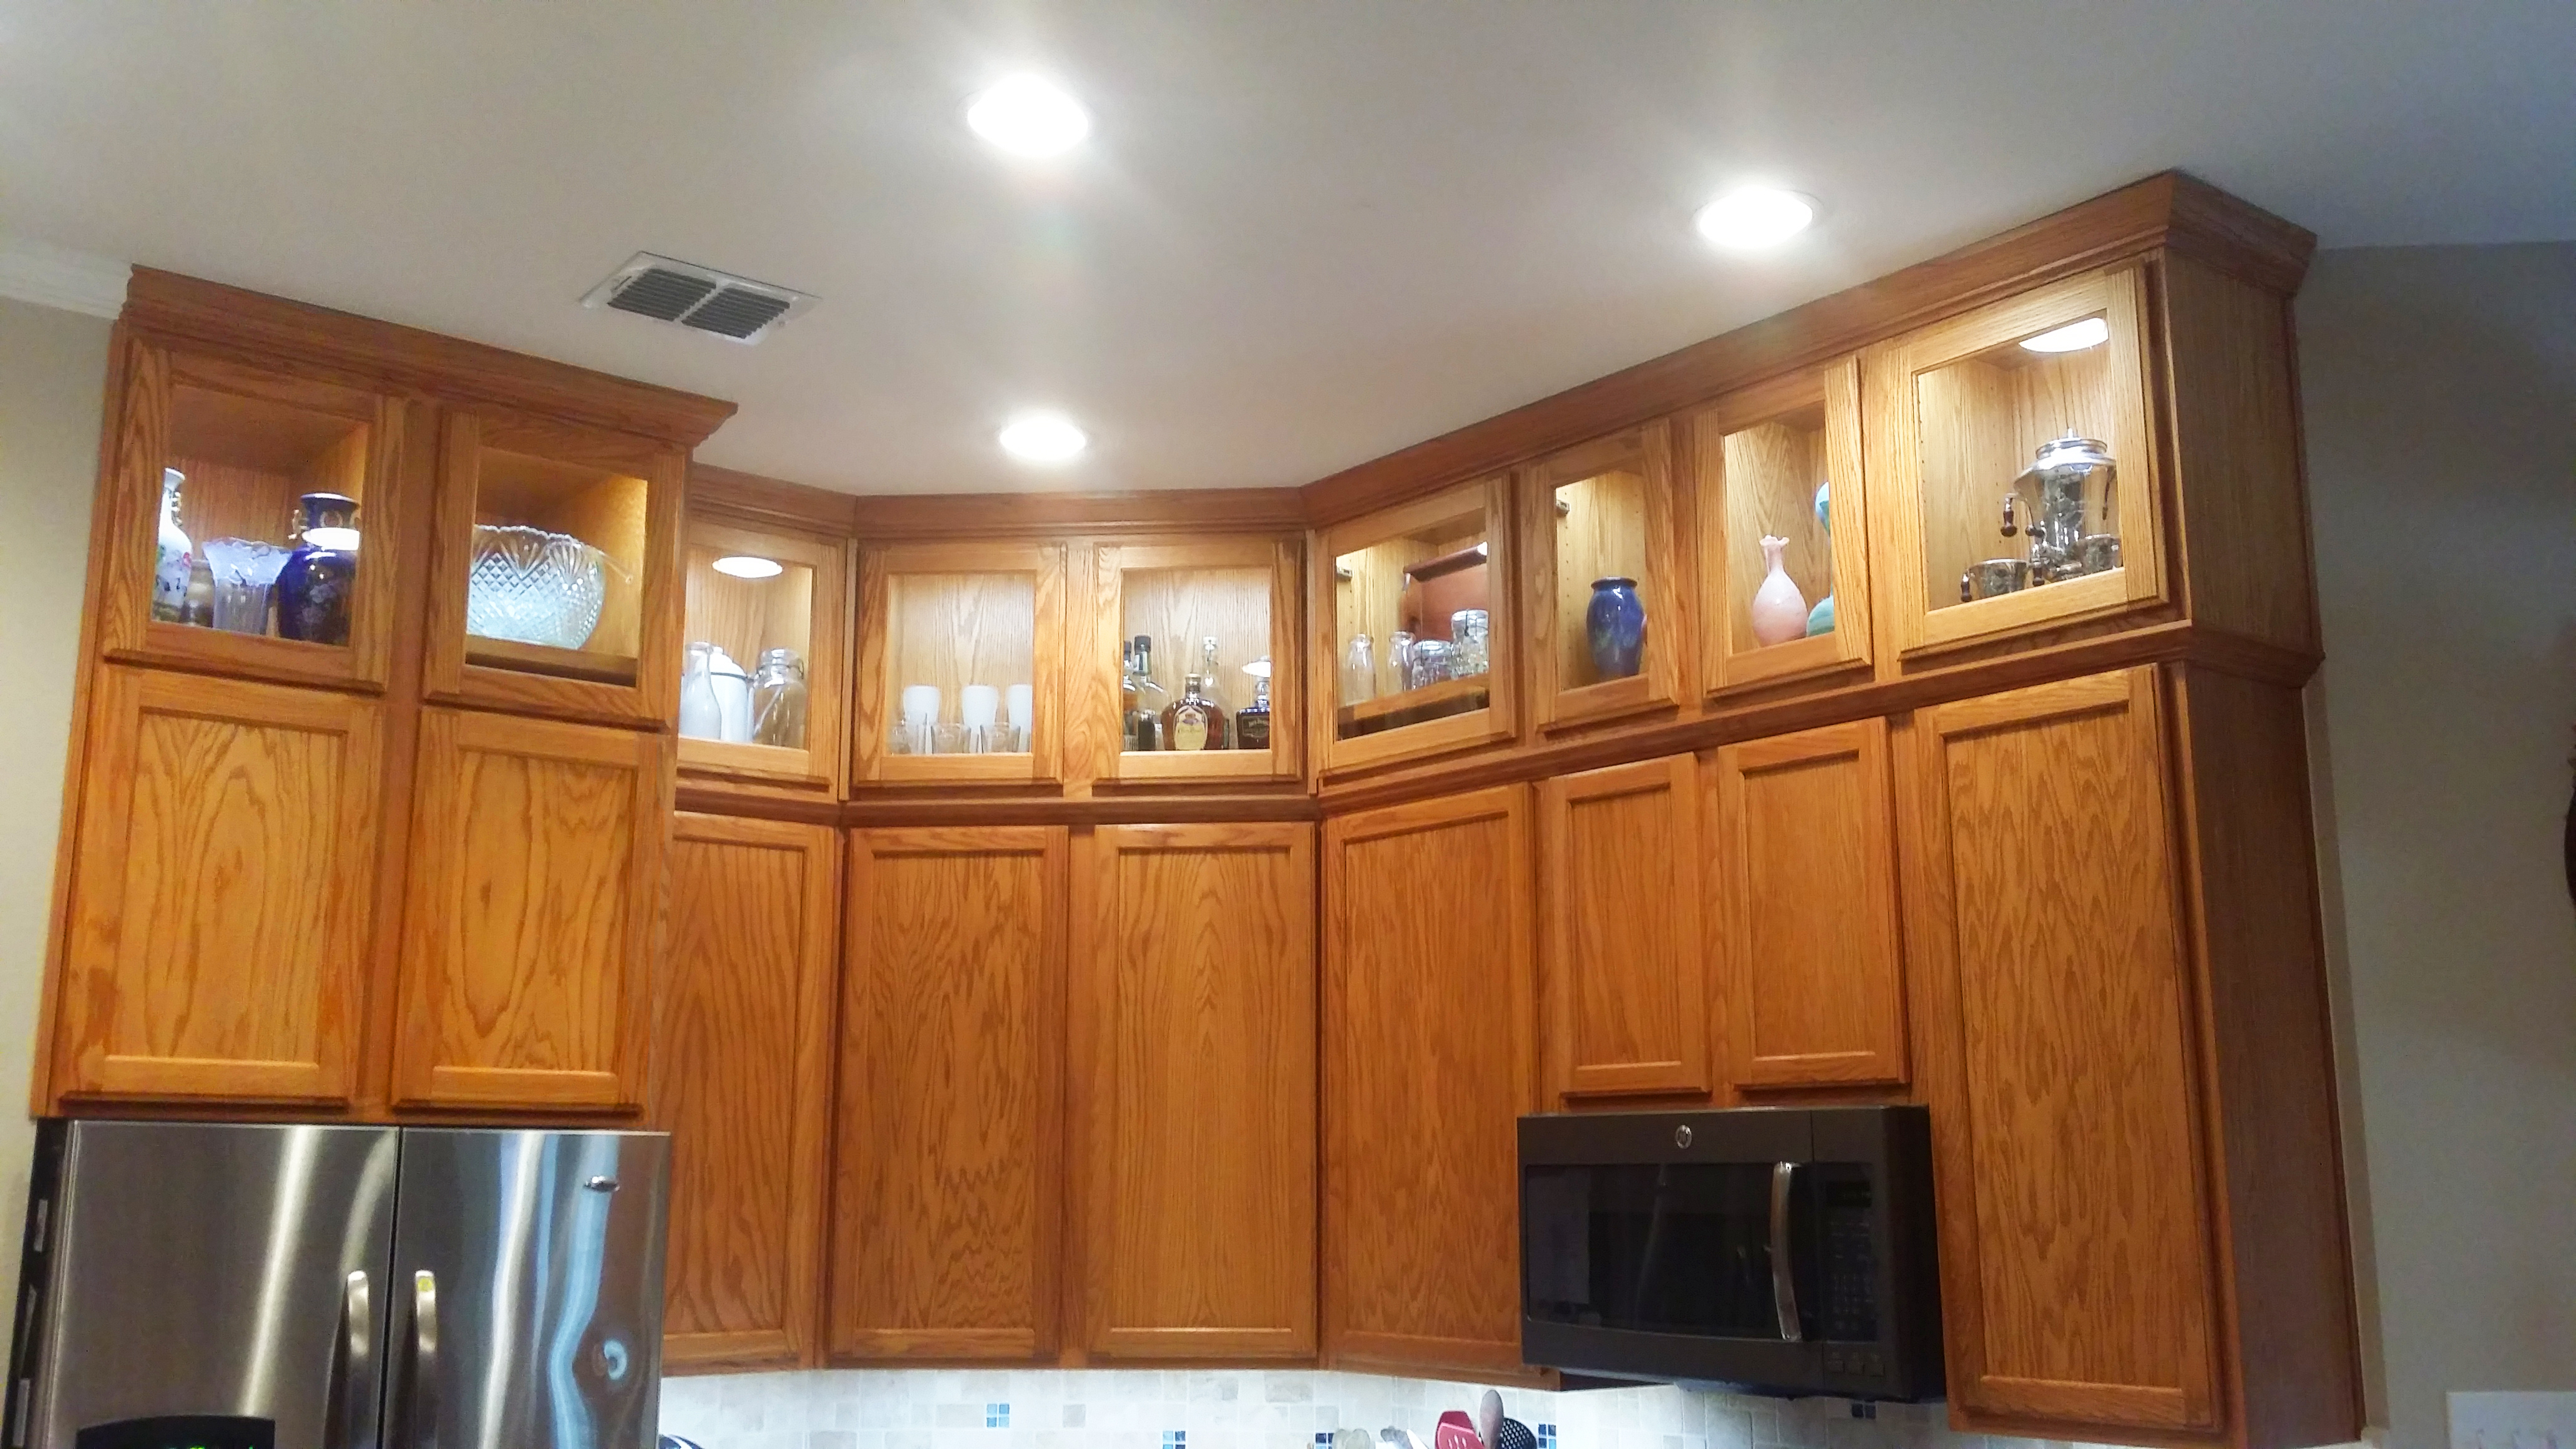 a stylish cabinet installation transforms a dated kitchen installing kitchen cabinets A Stylish Cabinet Installation Transforms a Dated Kitchen Rumenapp finished cabinets 2